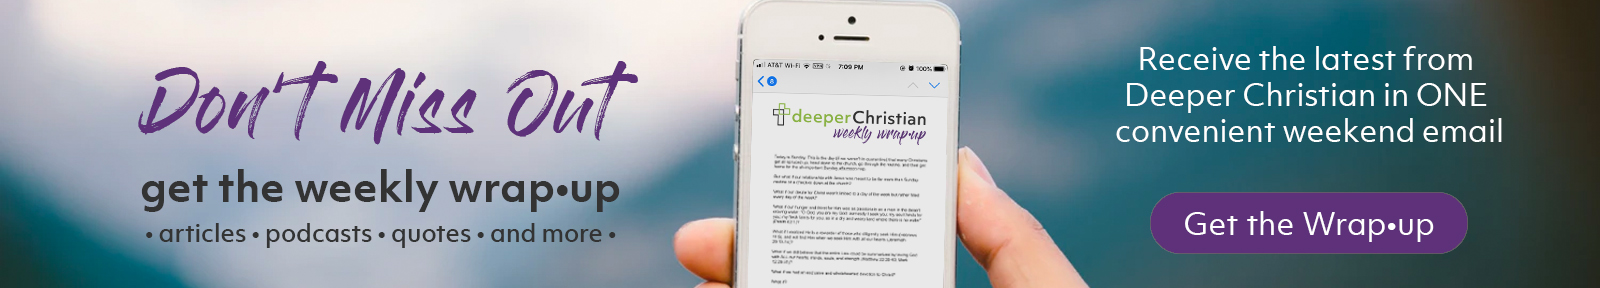 Get the Deeper Christian Weekly Wrap-up